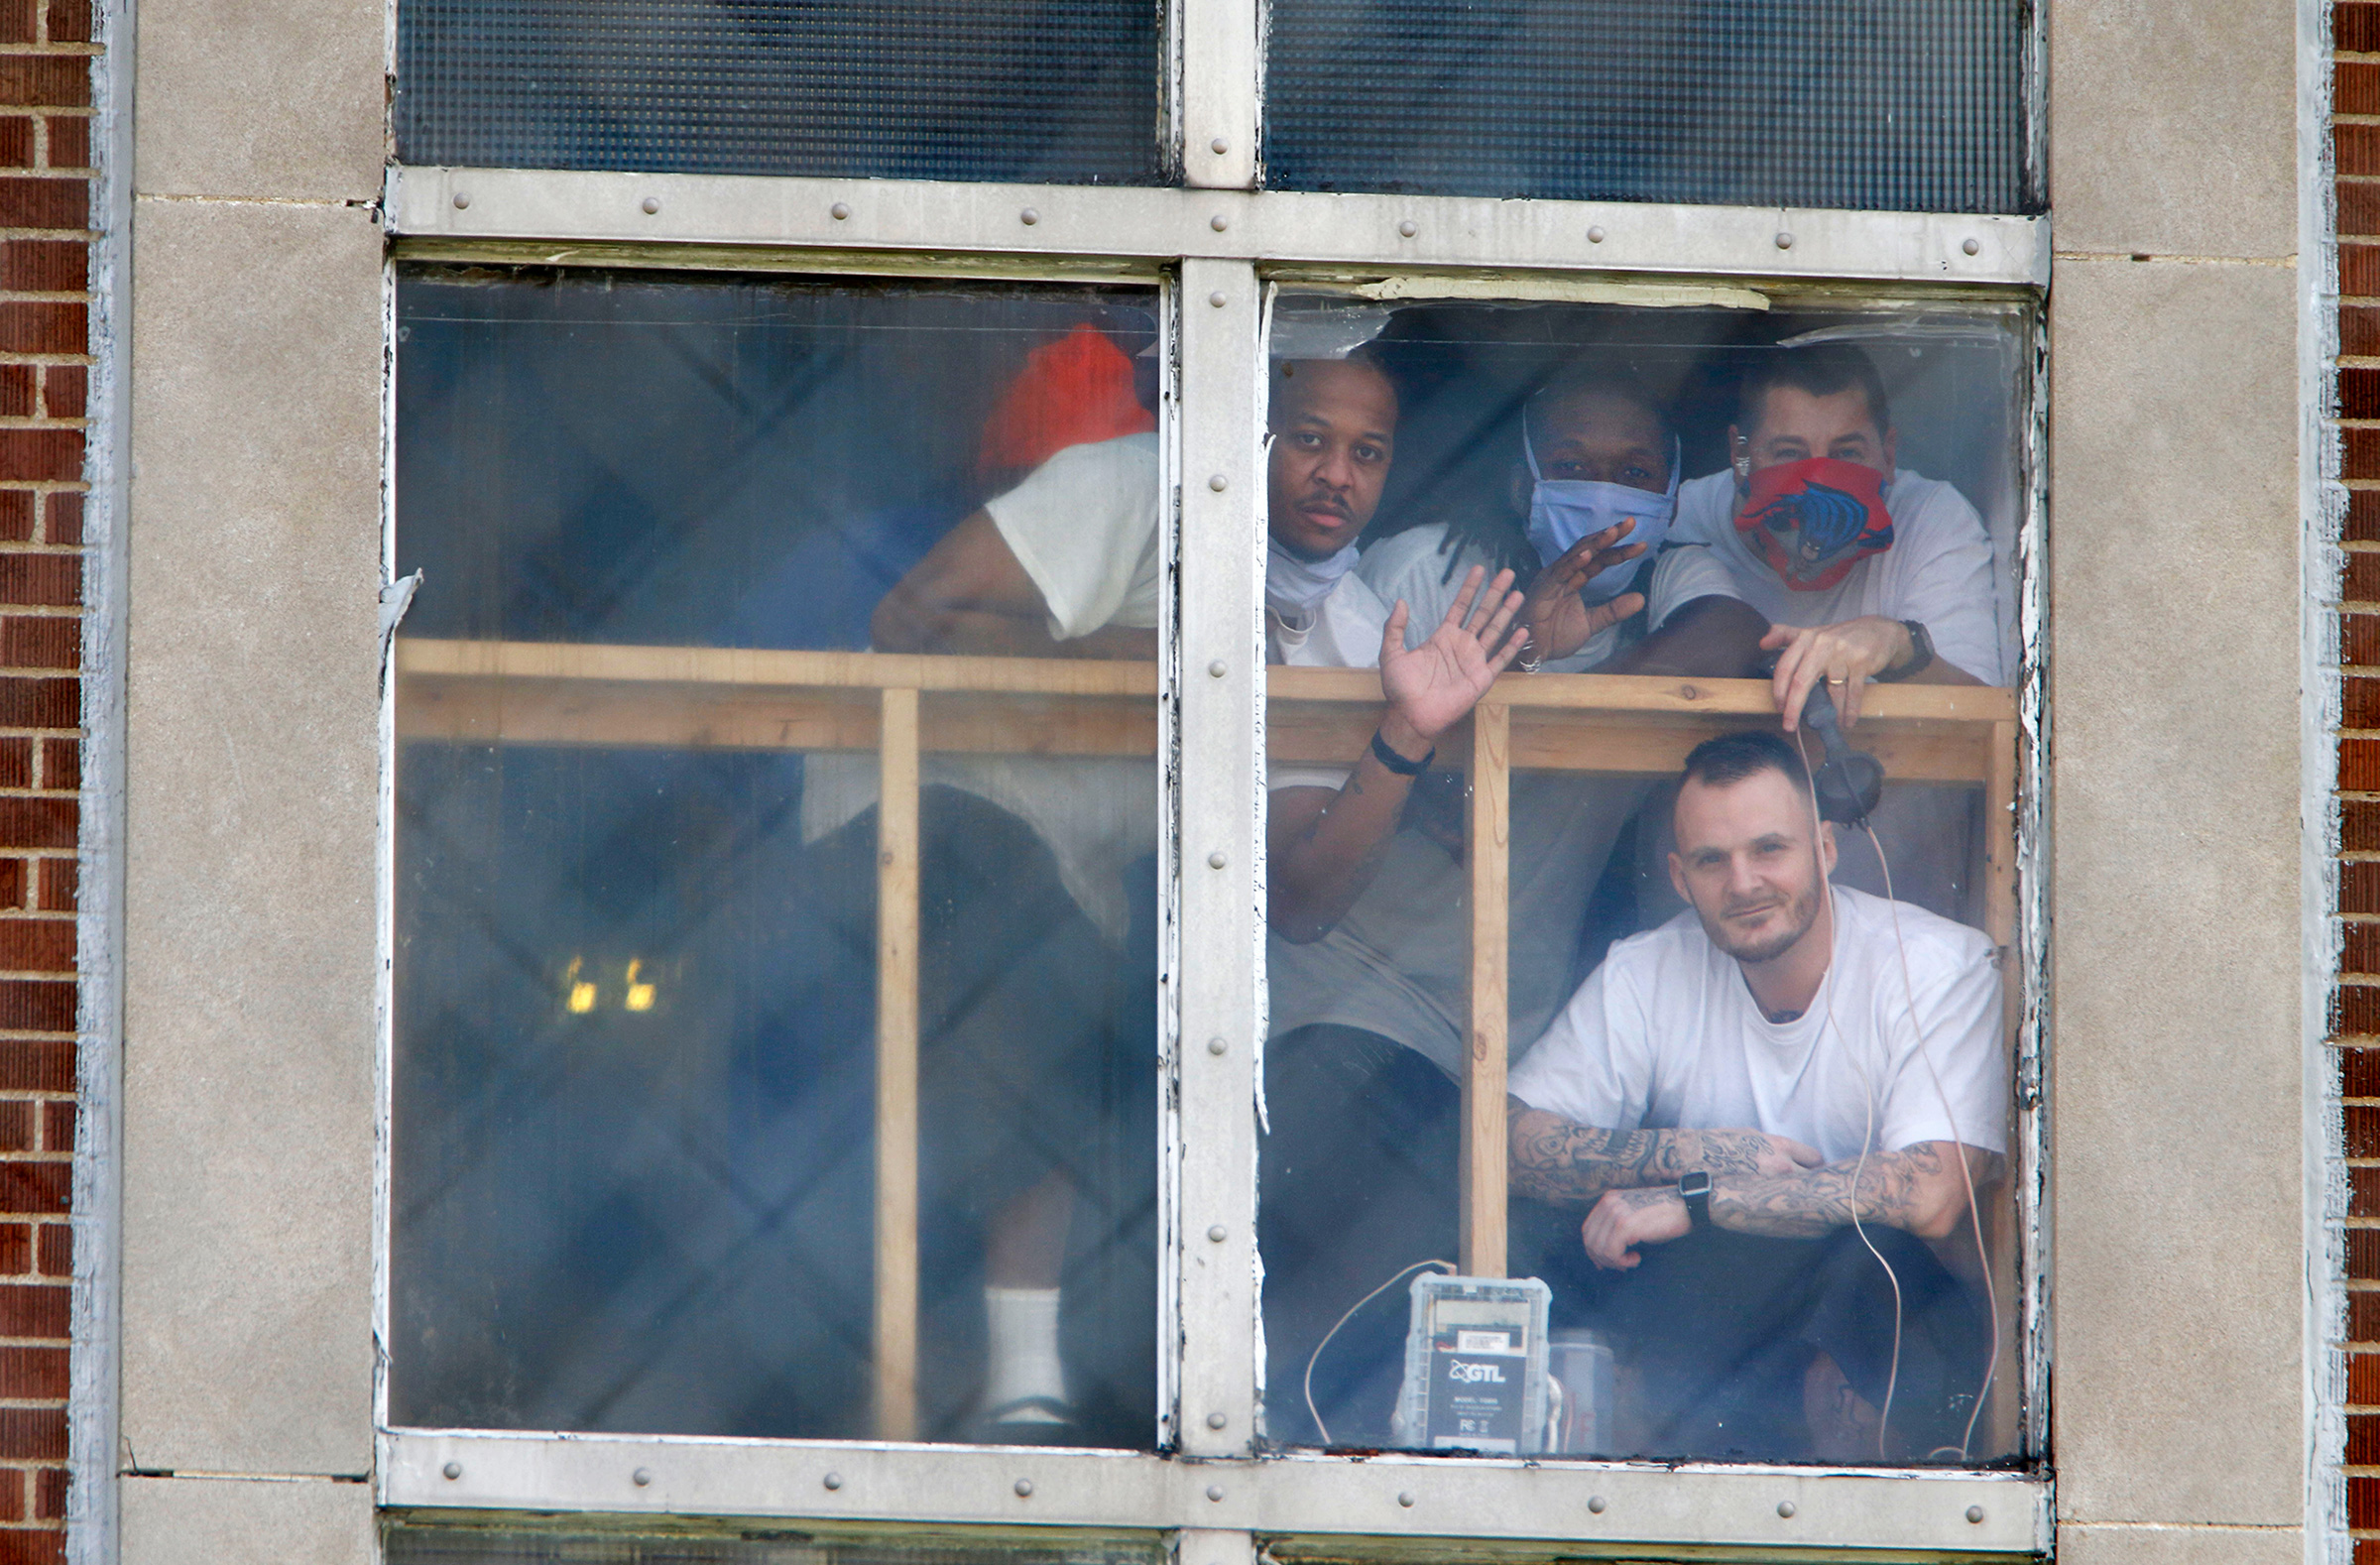 Prisoners at the Westville Correctional Facility in Westville, Ind., demand more humane treatment